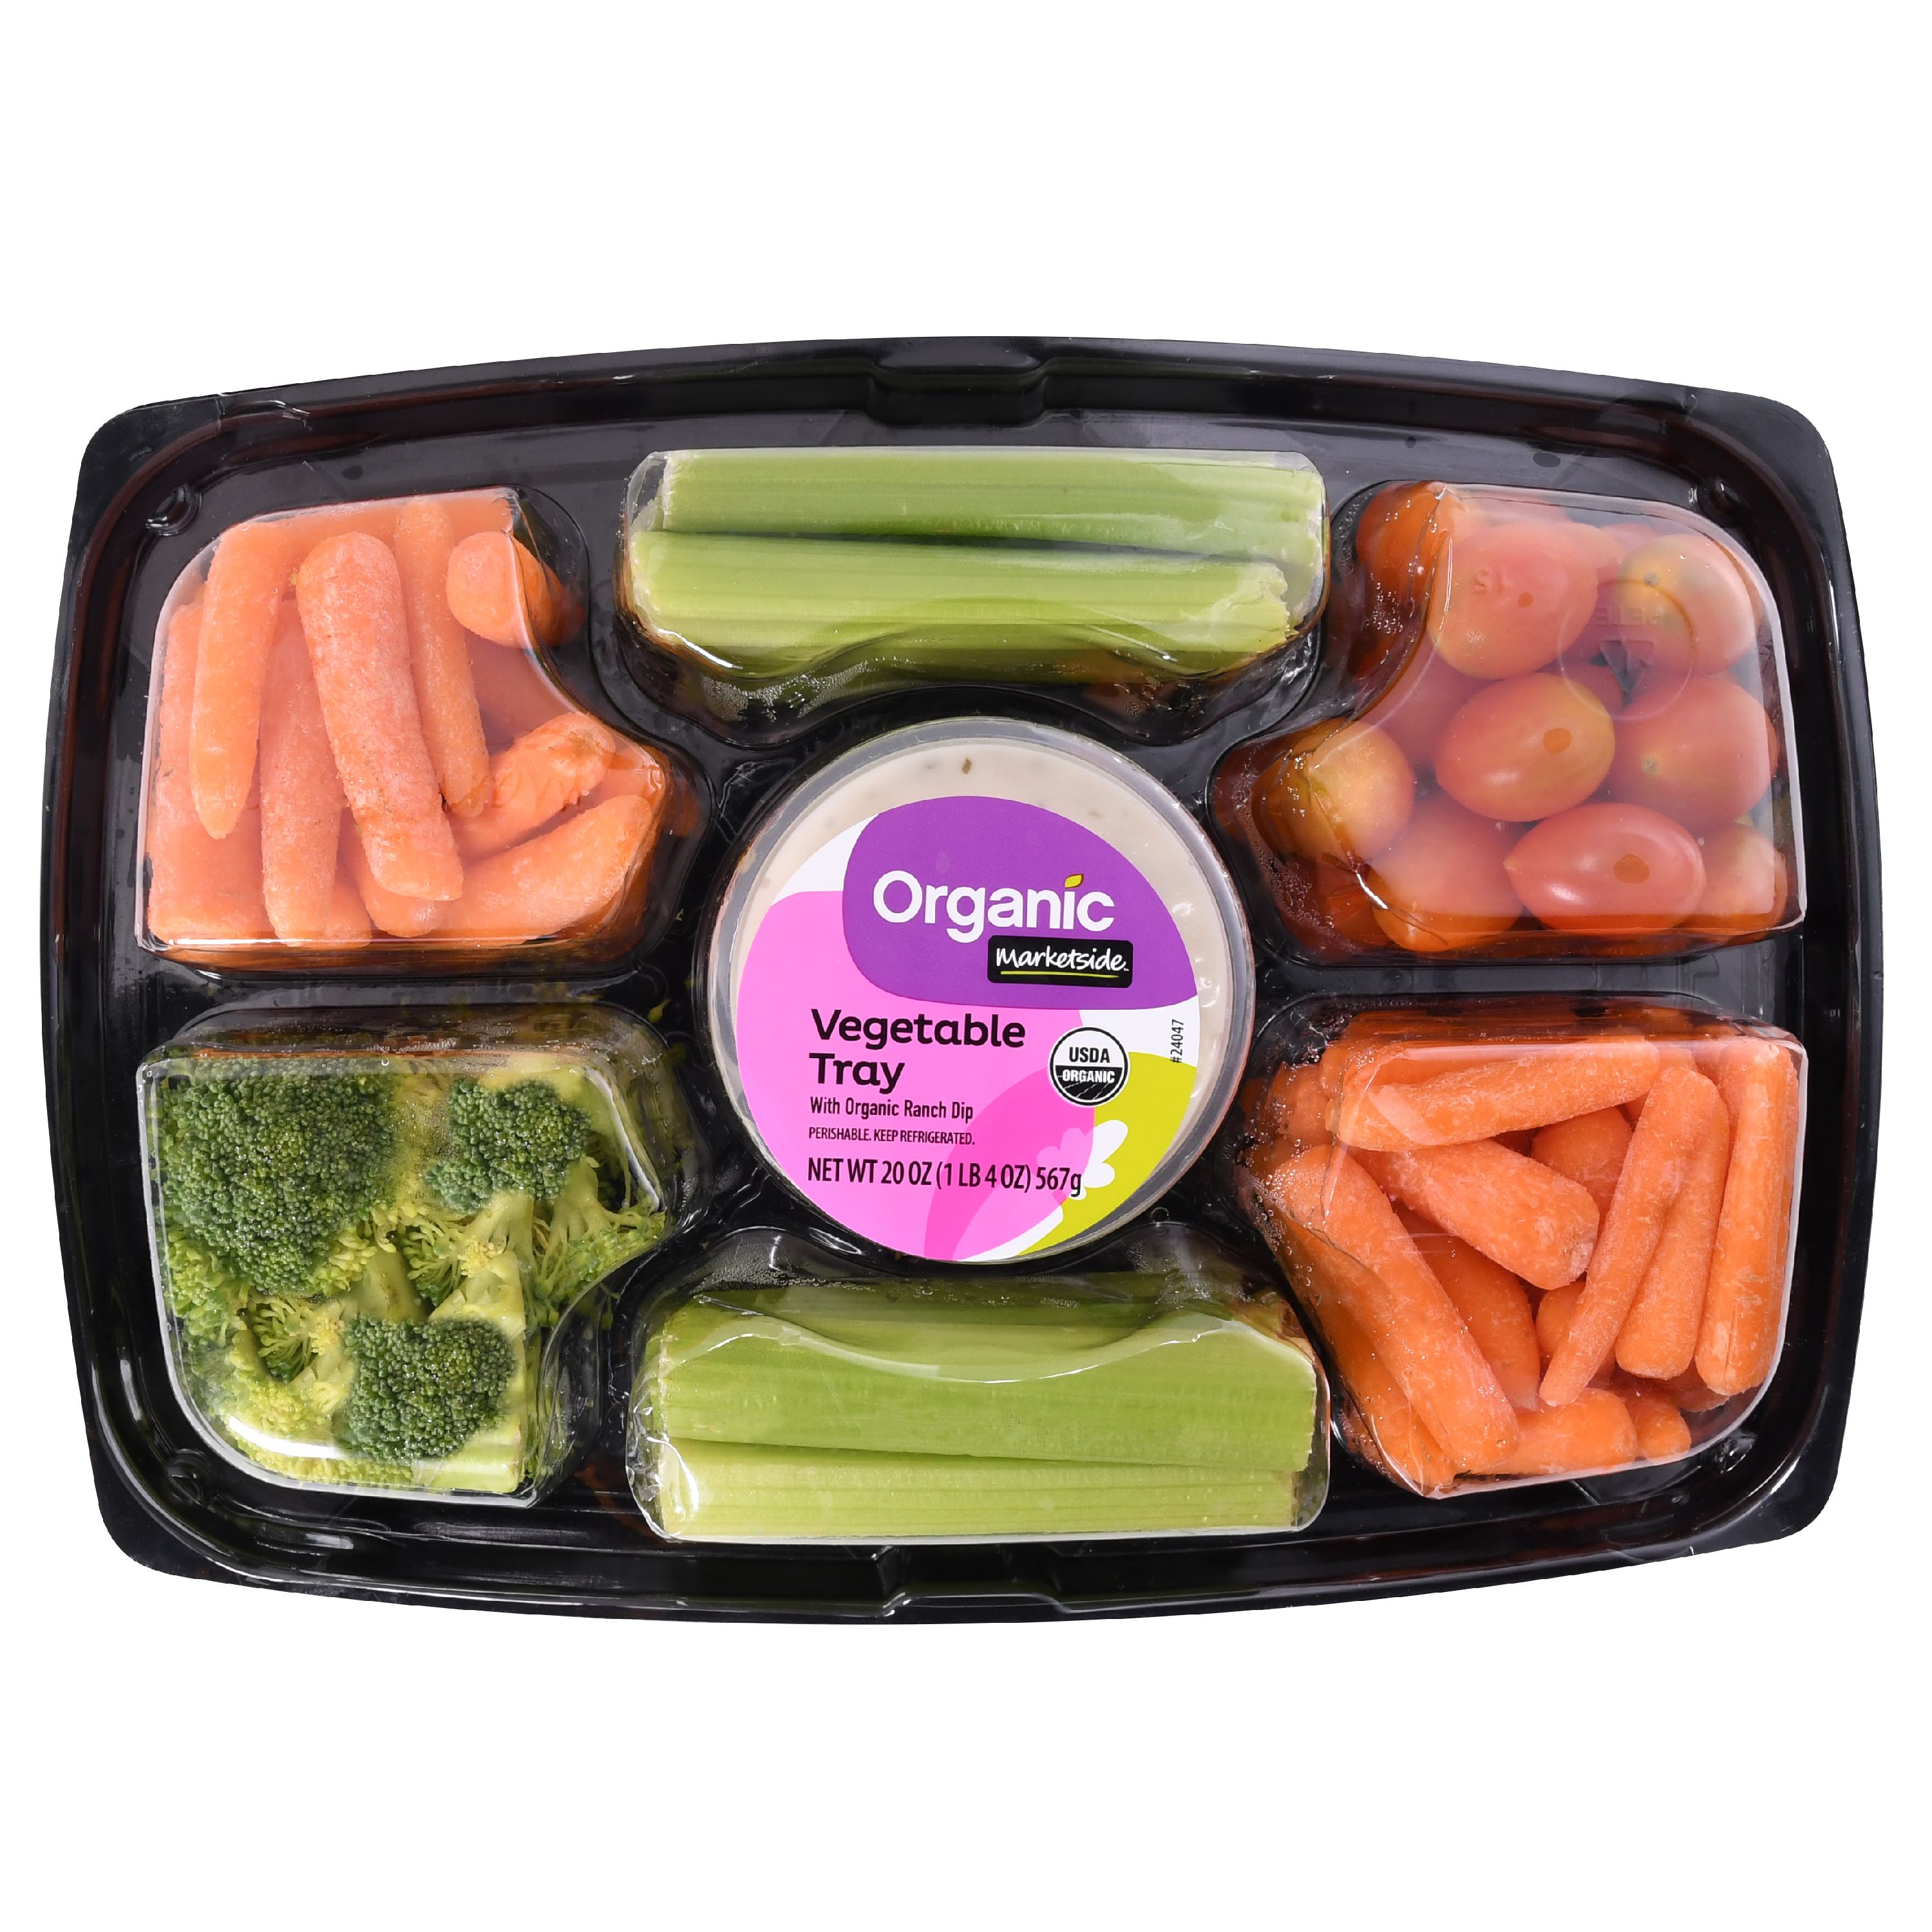 Marketside Vegetable Tray with Organic Ranch Dip, 20 oz